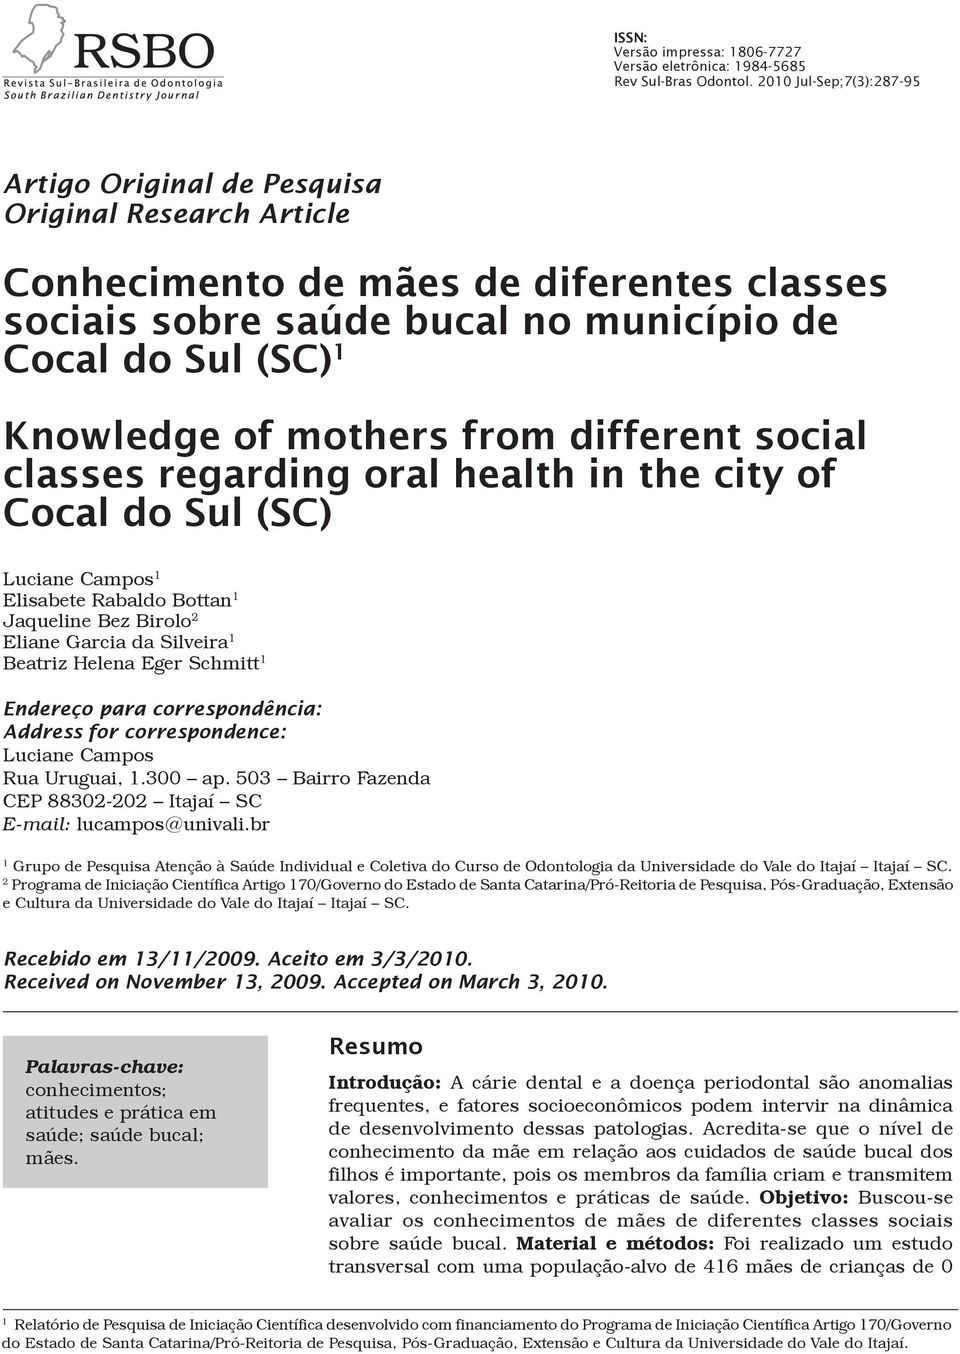 mothers from different social classes regarding oral health in the city of Cocal do Sul (SC) Luciane Campos 1 Elisabete Rabaldo Bottan 1 Jaqueline Bez Birolo 2 Eliane Garcia da Silveira 1 Beatriz